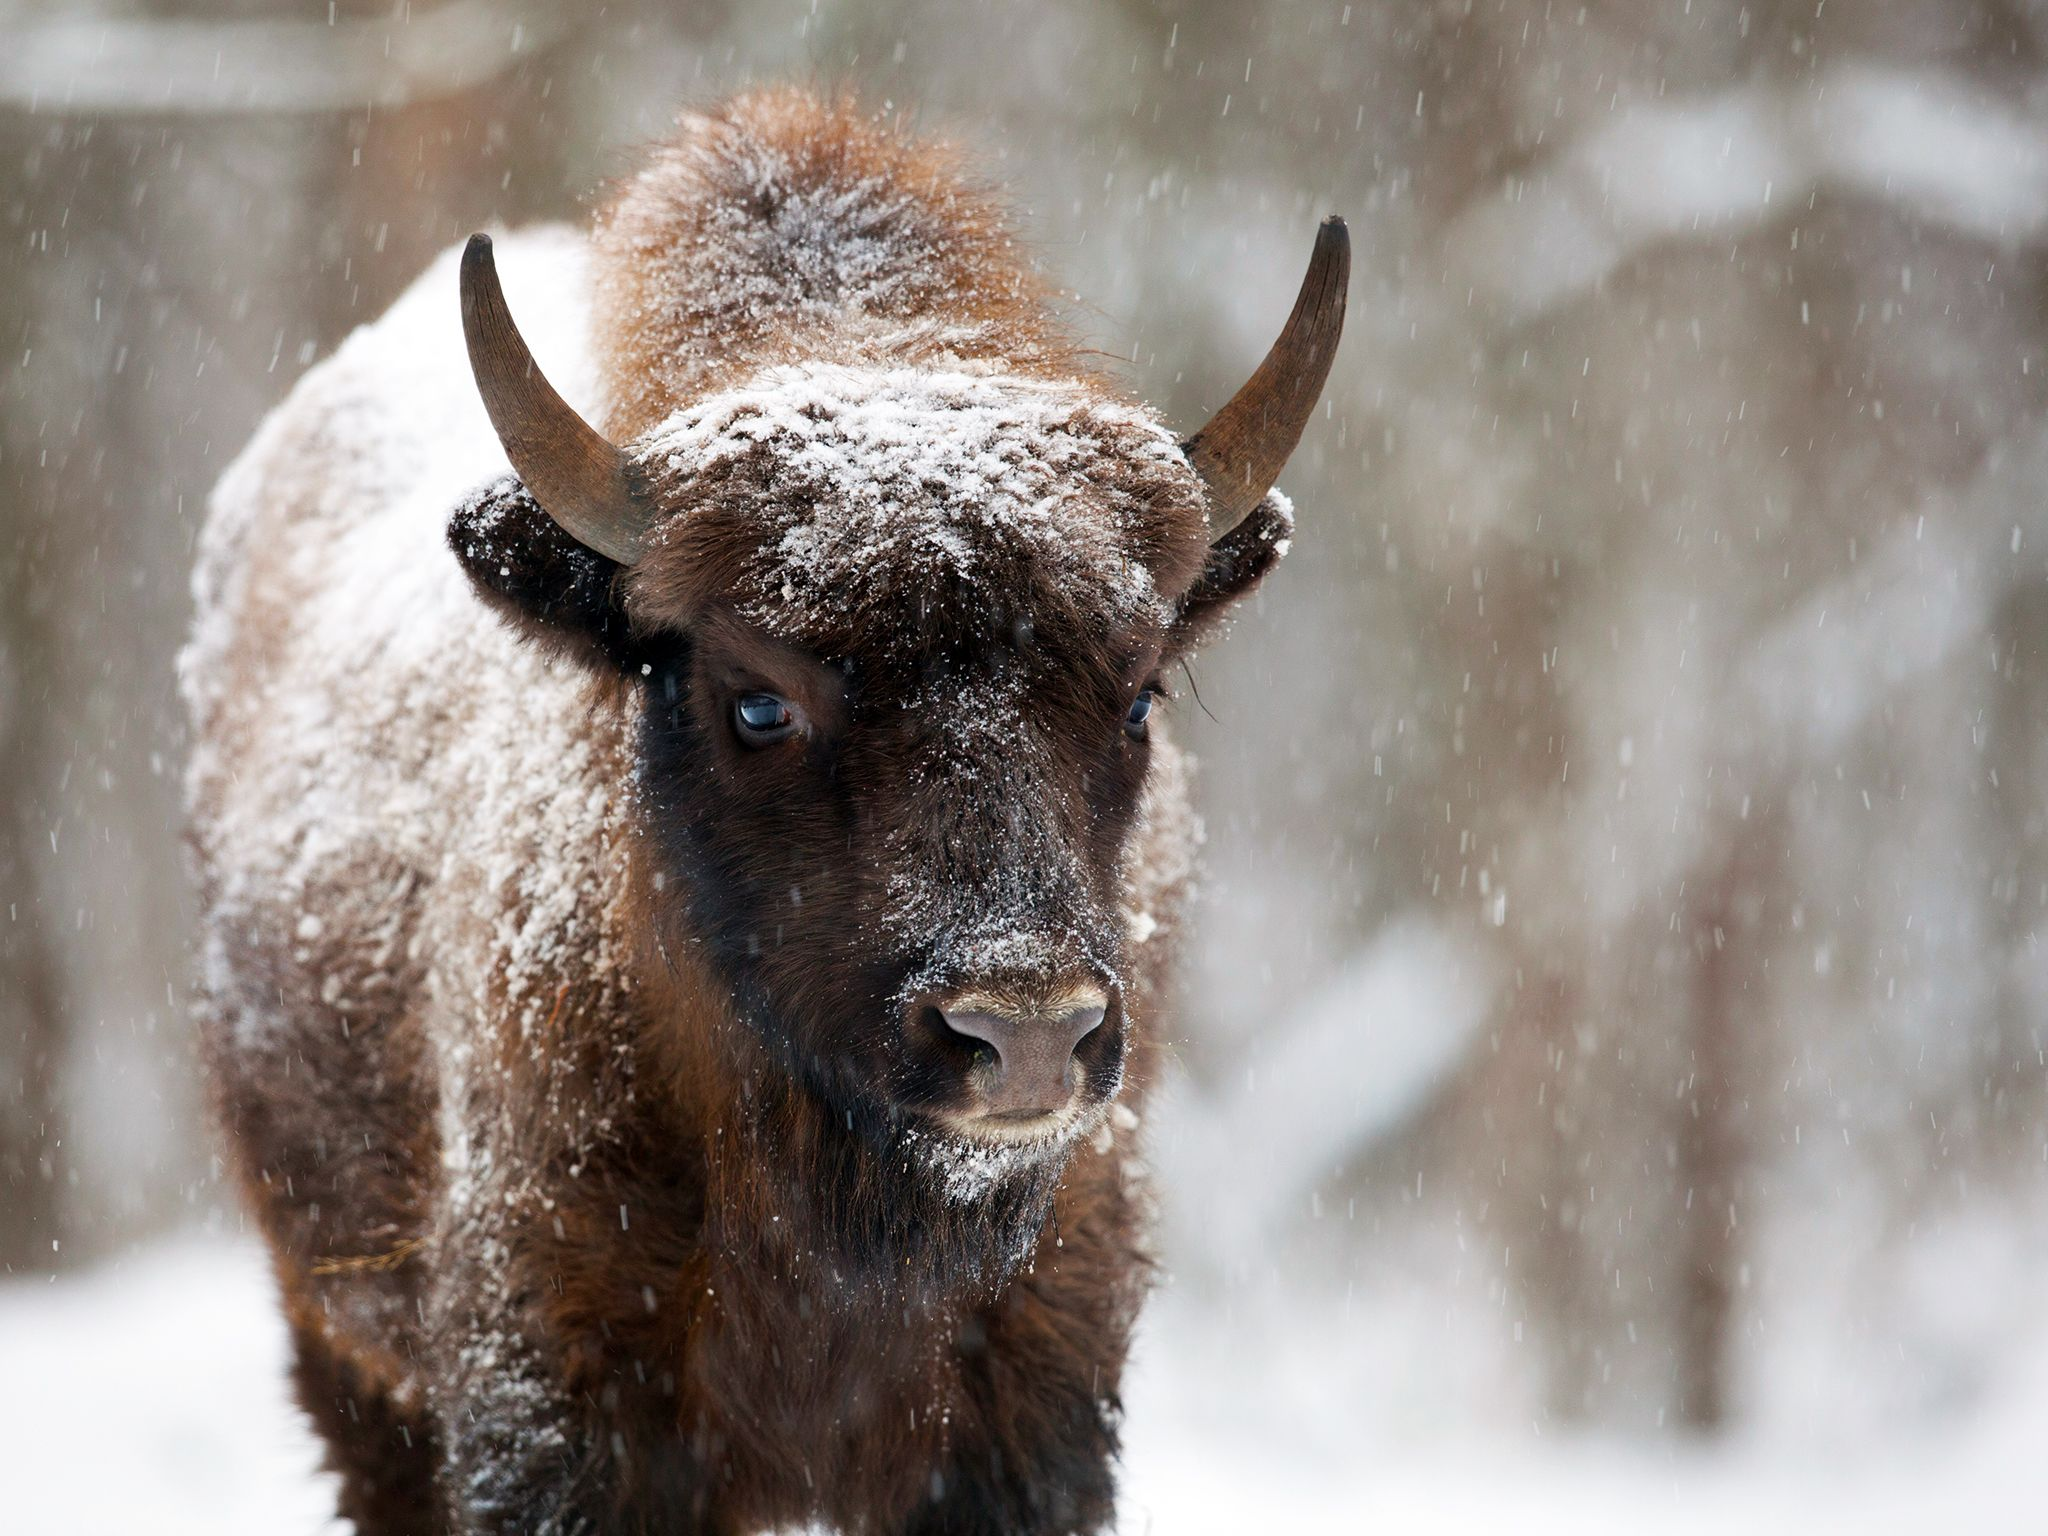 Khoiniki, Belarus: A bison stands alone getting covered by snow. This image is from Urban Jungle. [Photo of the day - December 2014]